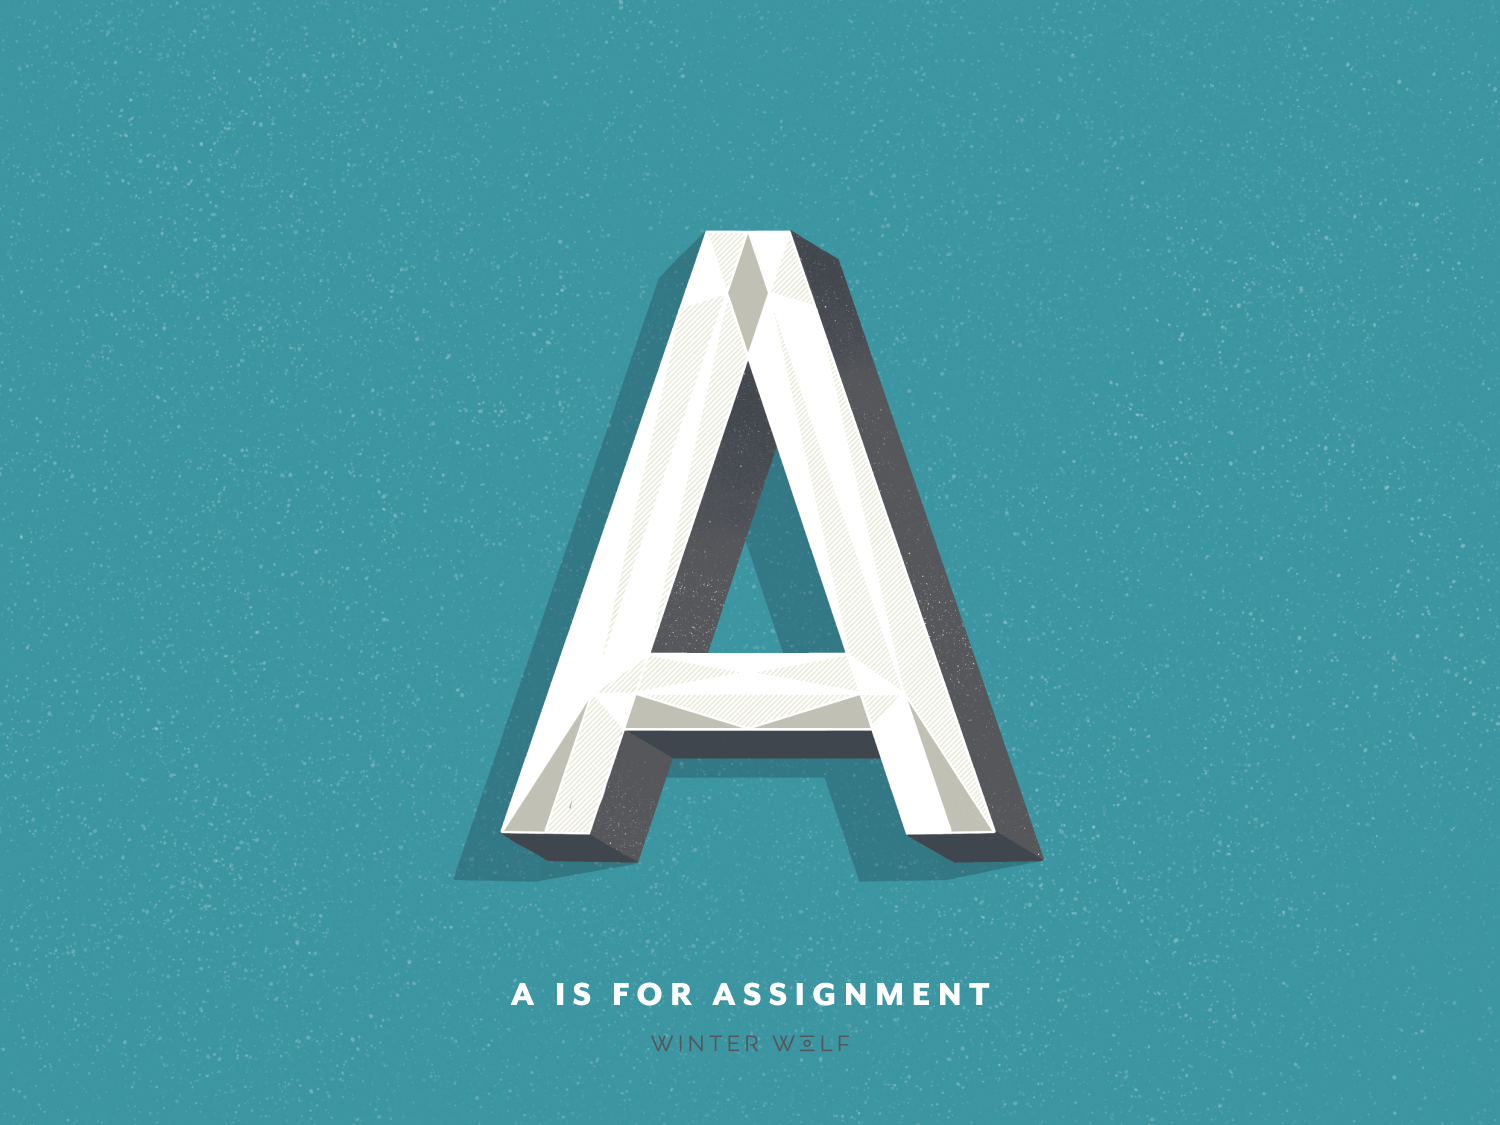 A is for Assignment hand lettered logo hand lettering hand lettered hand art south african graphic design a lettering a a letter illustrator drawing bright lettering winter wolf creative typography procreate illustration doodle calligraphy 3d lettering lettering